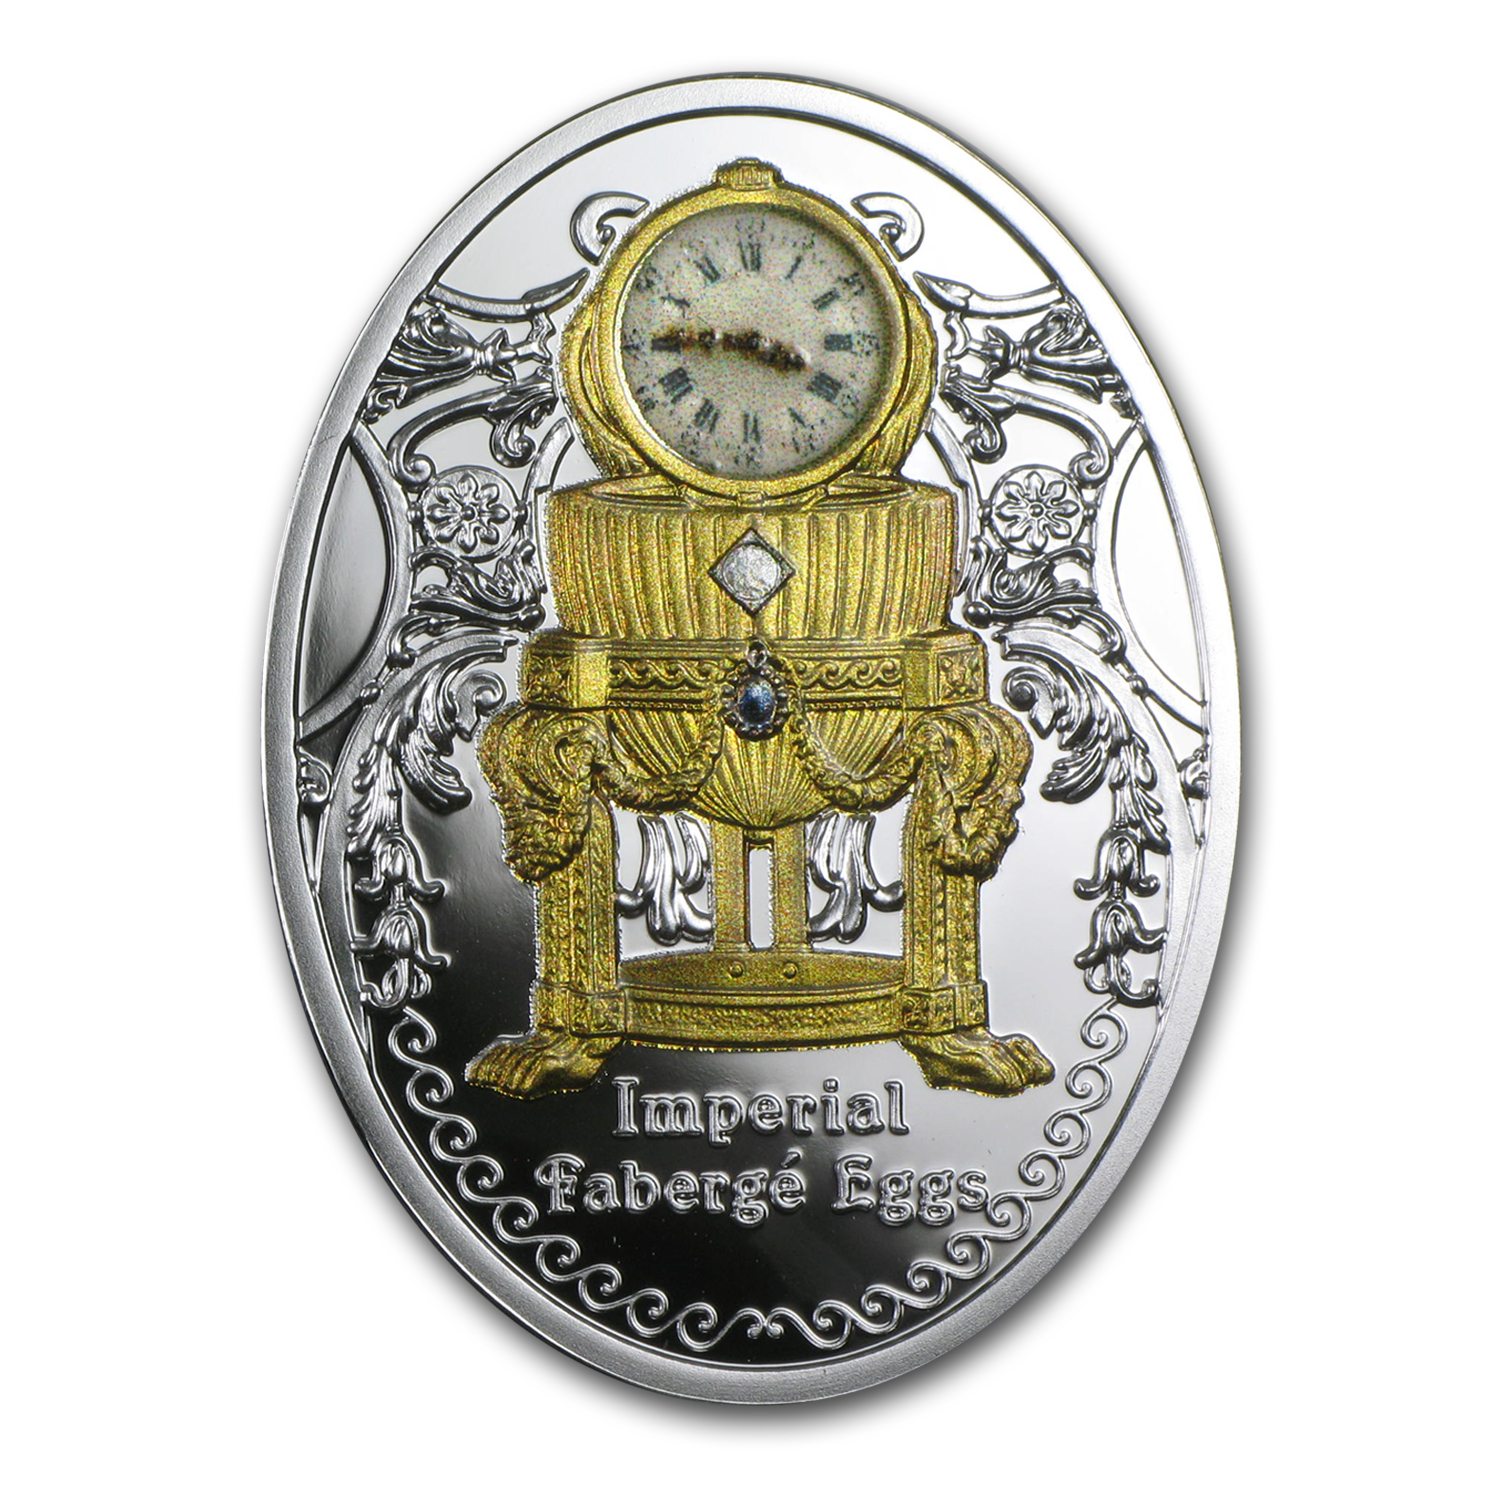 2015 Niue Silver Imperial Faberge Eggs Third Imperial Egg